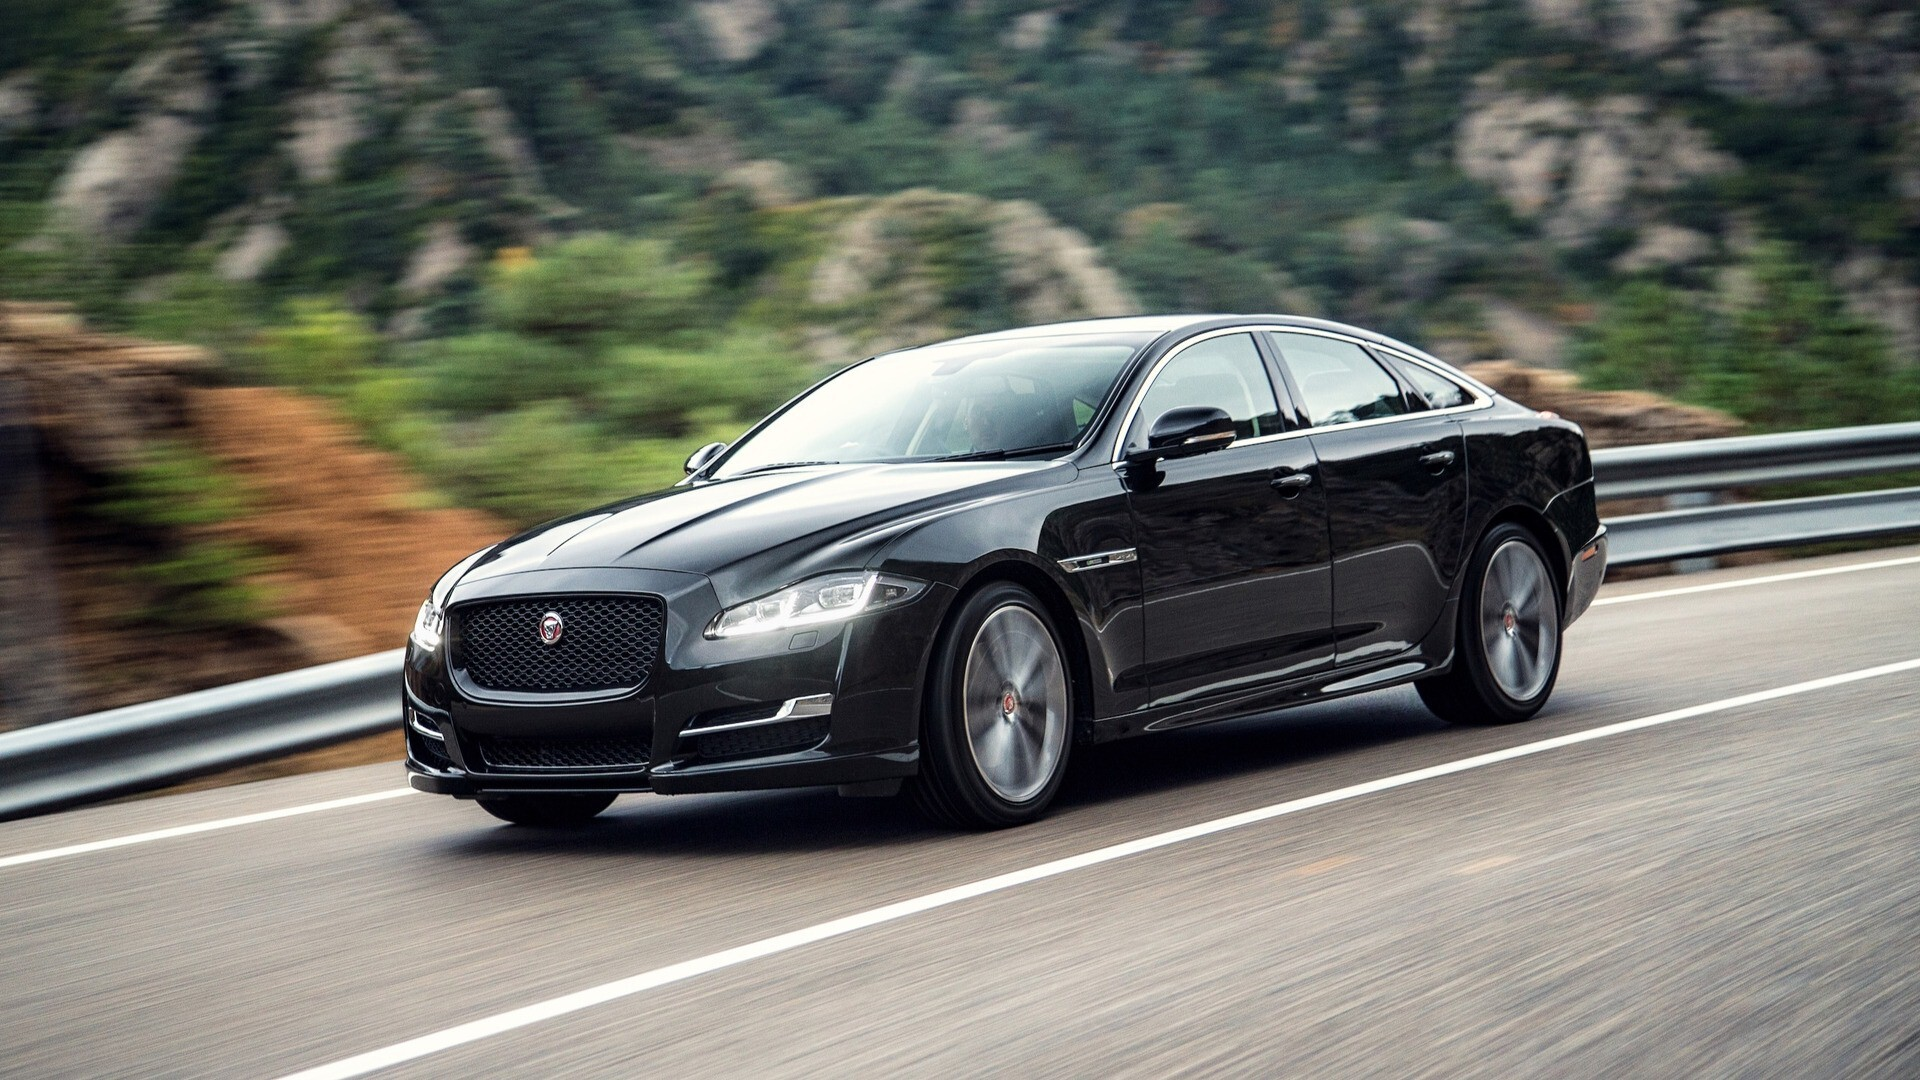 2018 awesome jaguar xj black car hd wallpapers. Black Bedroom Furniture Sets. Home Design Ideas